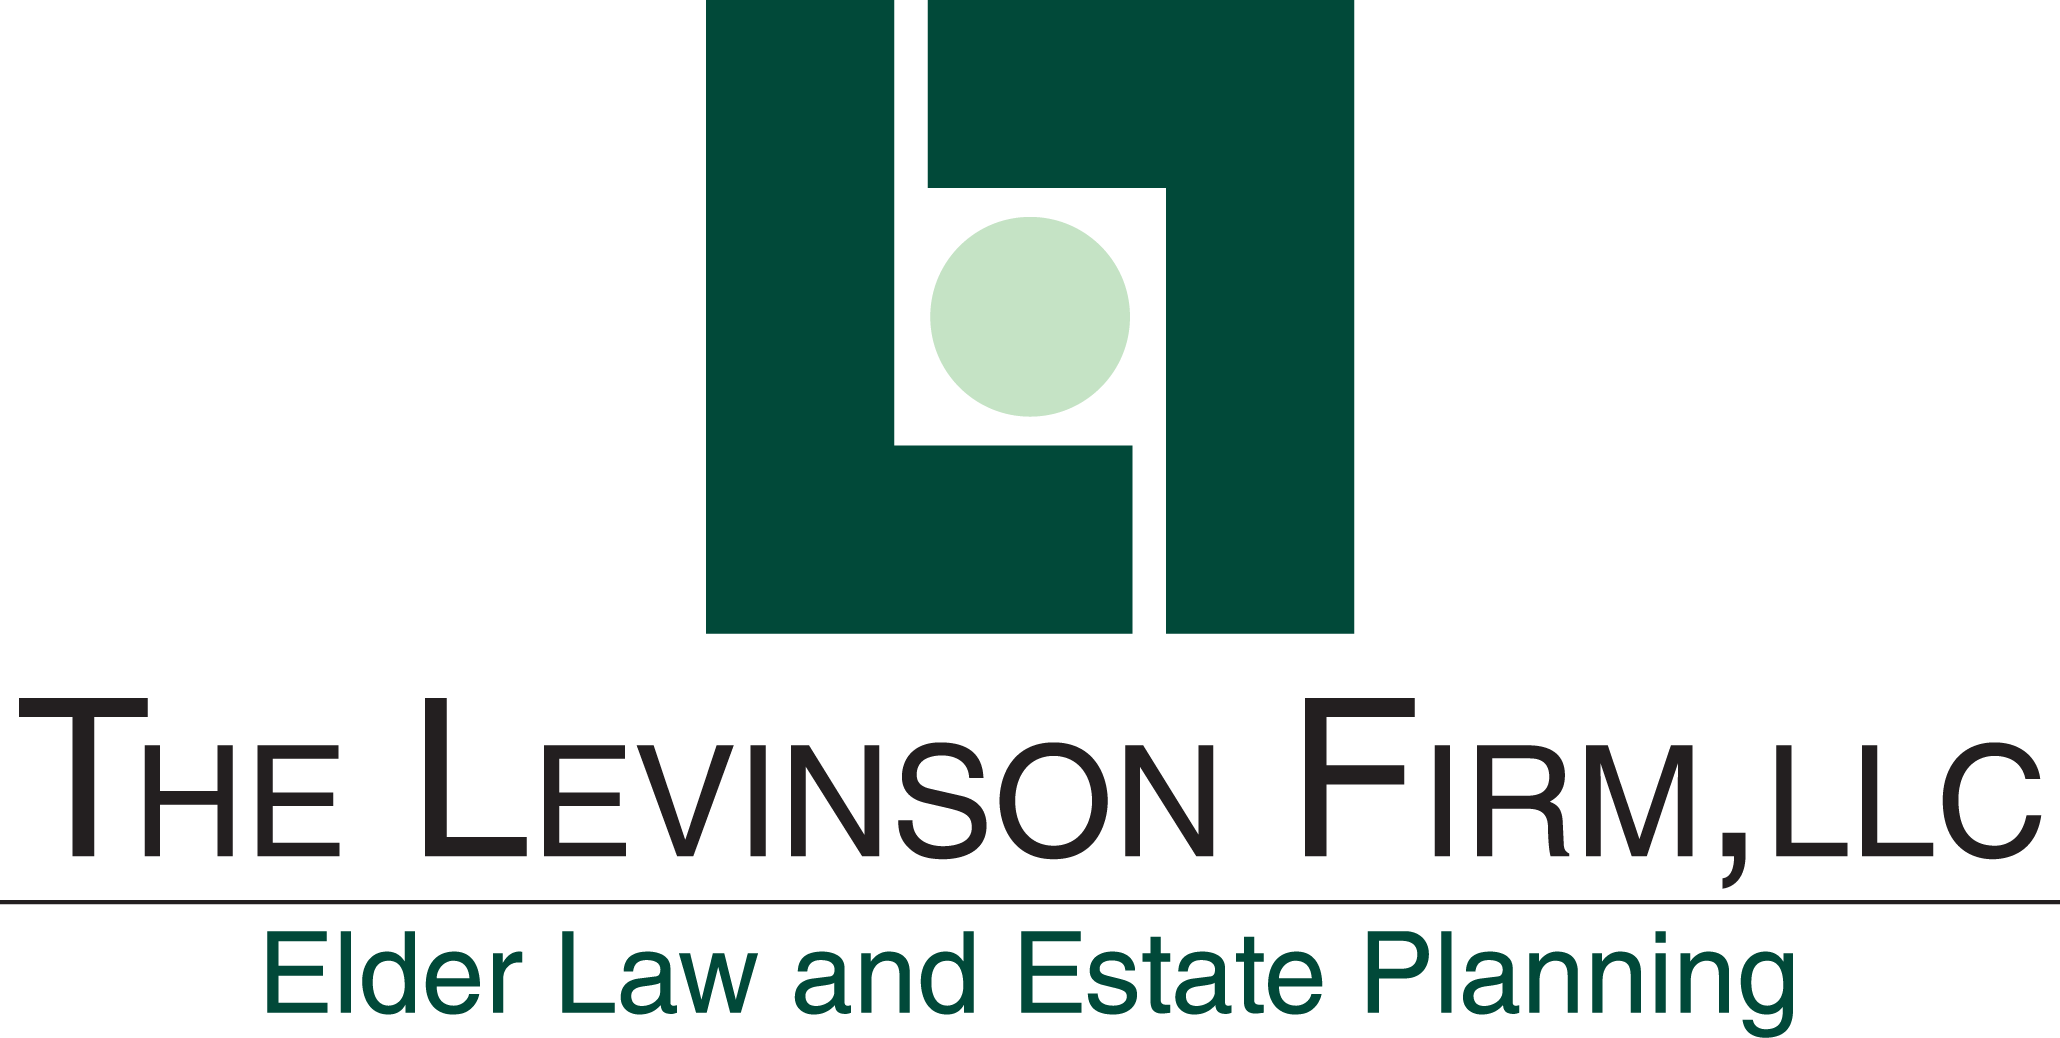 The   Levinson Firm  , LLC is a Wilmington, Delaware   law firm   led by   attorney   Karla B.   Levinson   that exclusively practices elder   law   and estate planning.